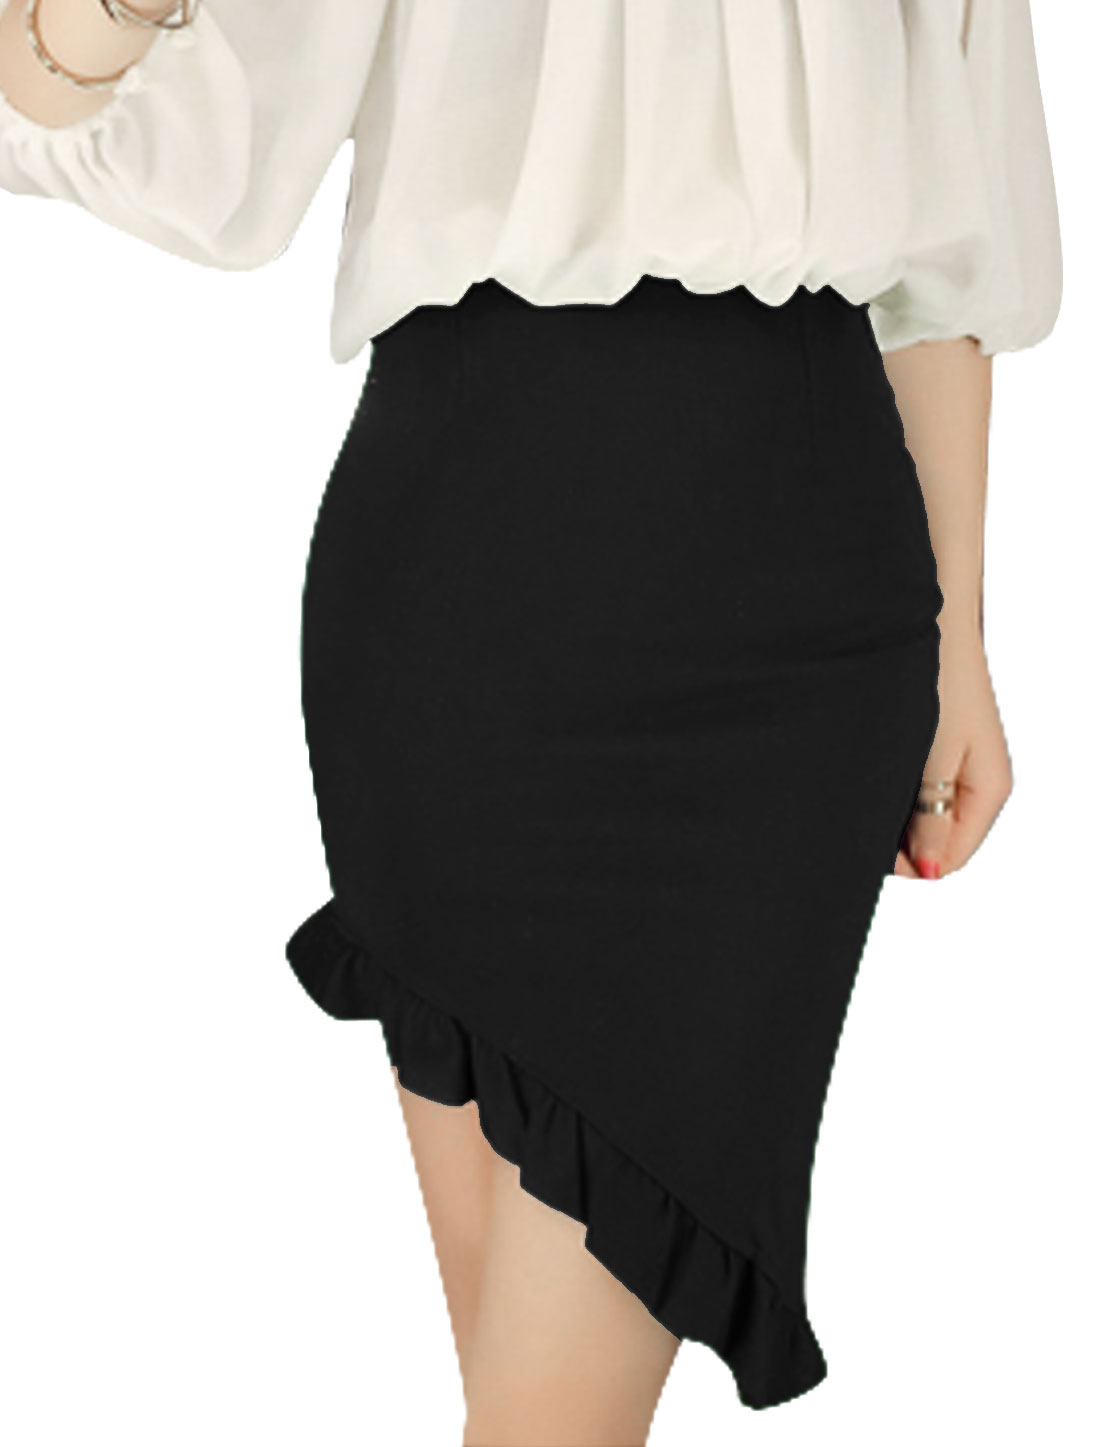 Women Hidden Zipper Side Ruffles Asymmetrical Hem Stretchy Skirt Black XS